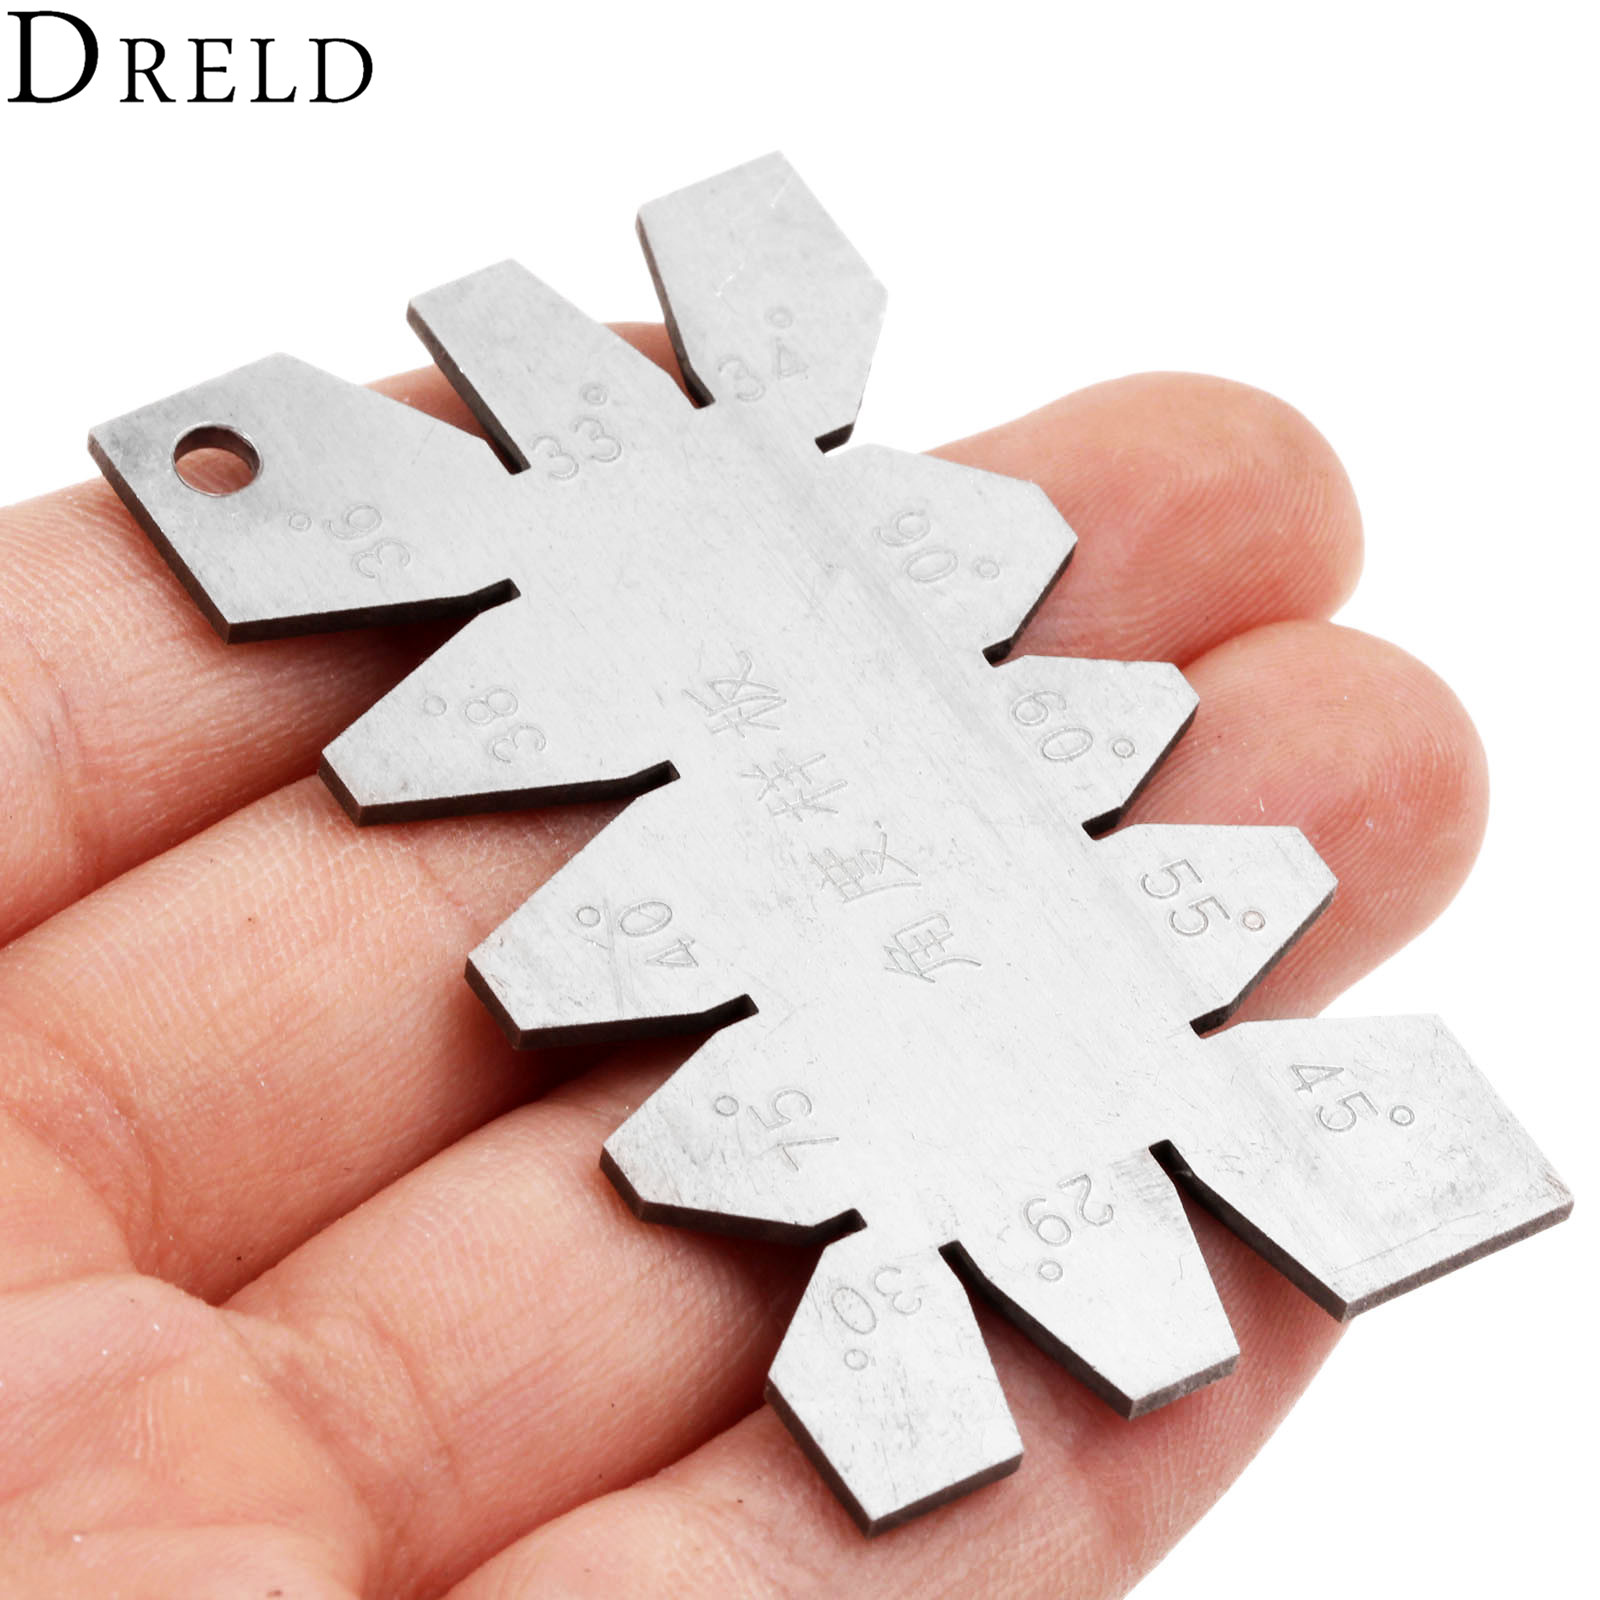 DRELD 1Pc Sliver Stainless Steel Screw Thread Cutting Angle Gage Gauge Measuring Tool